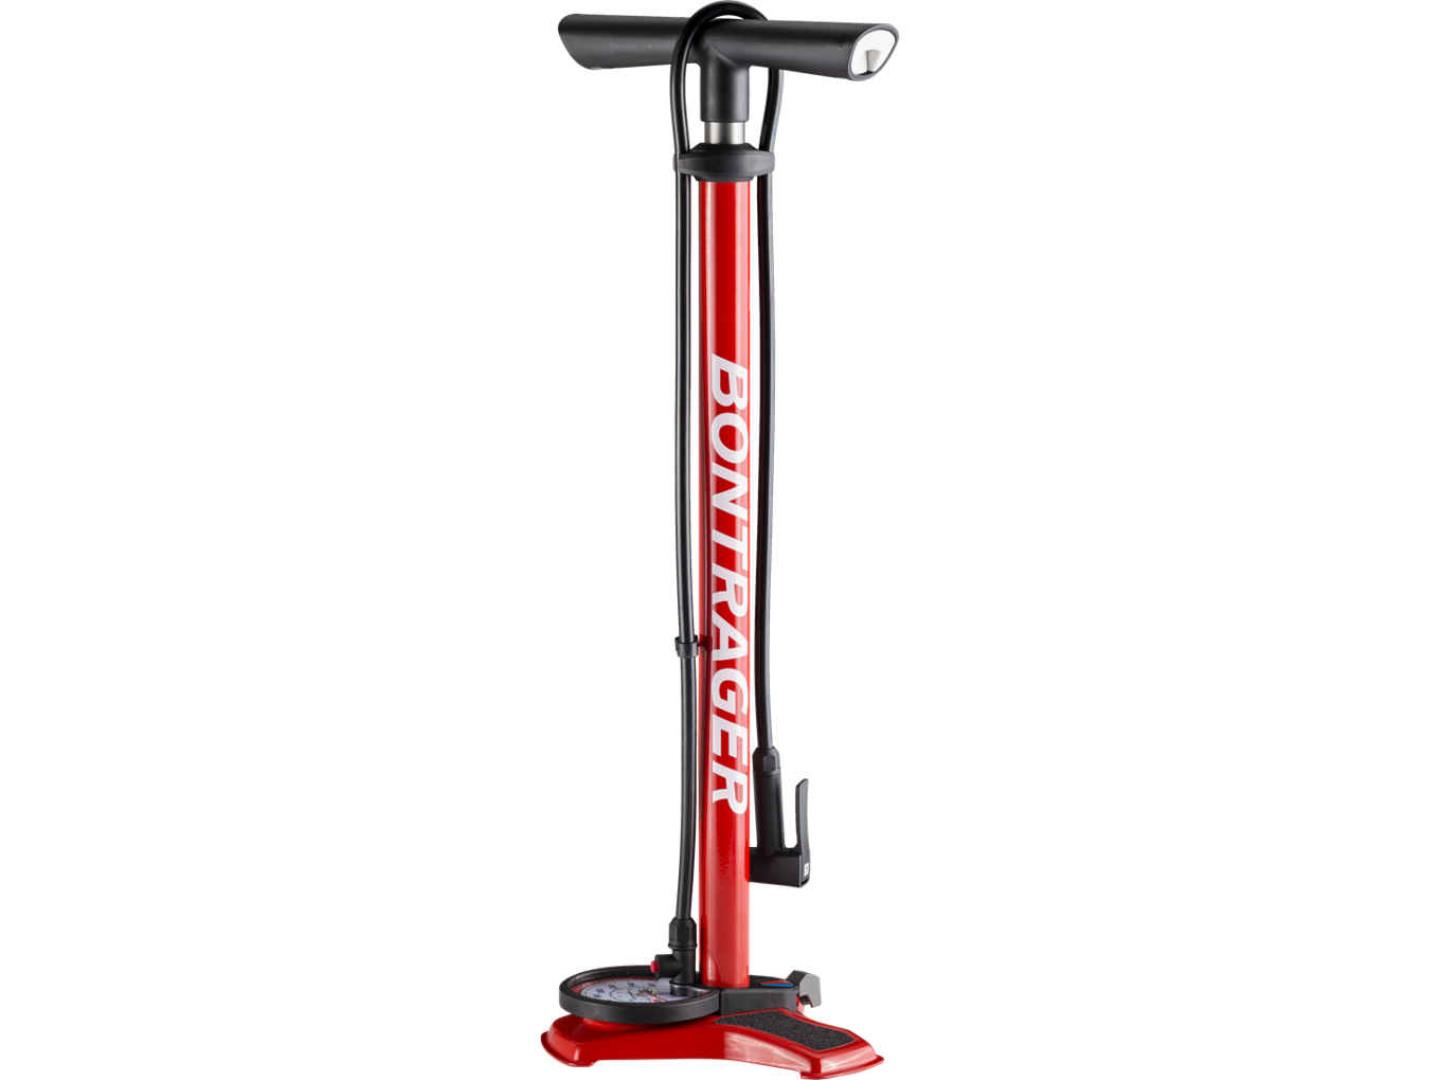 Bontrager Τρόμπα Δαπέδου Dual Charger